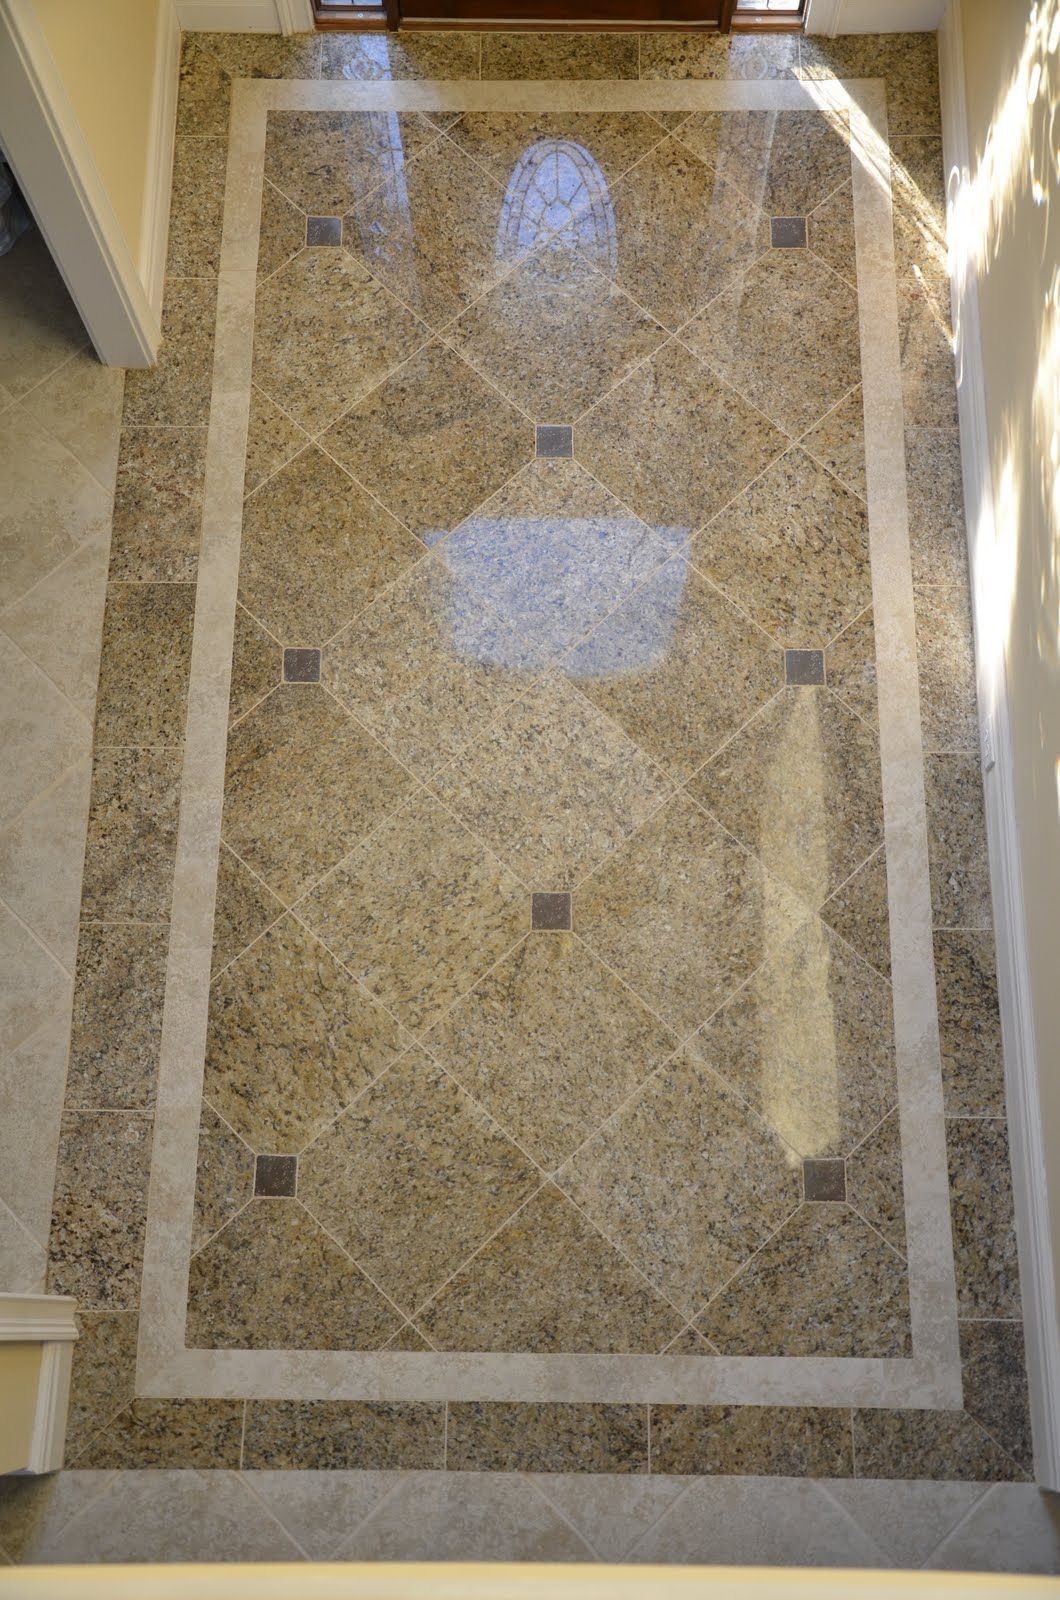 foyer floor tile design ideas small entryway tile - Tile Design Ideas